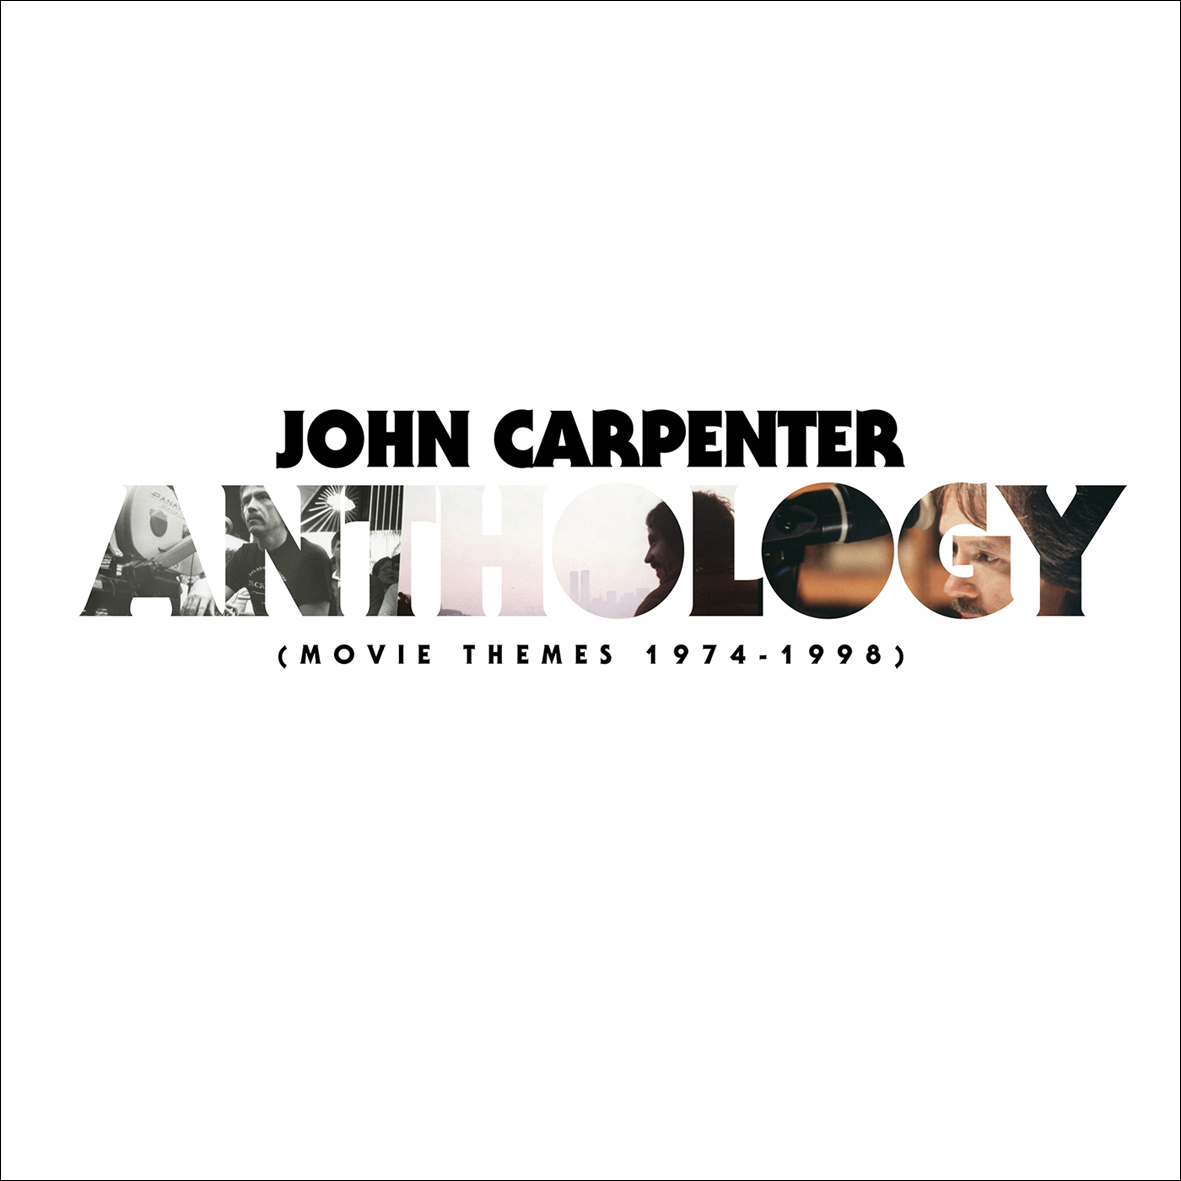 John-Carpenter-/-Anthology:-Movie-Themes-1974-1998-(jake-sya)(HSE-5210)